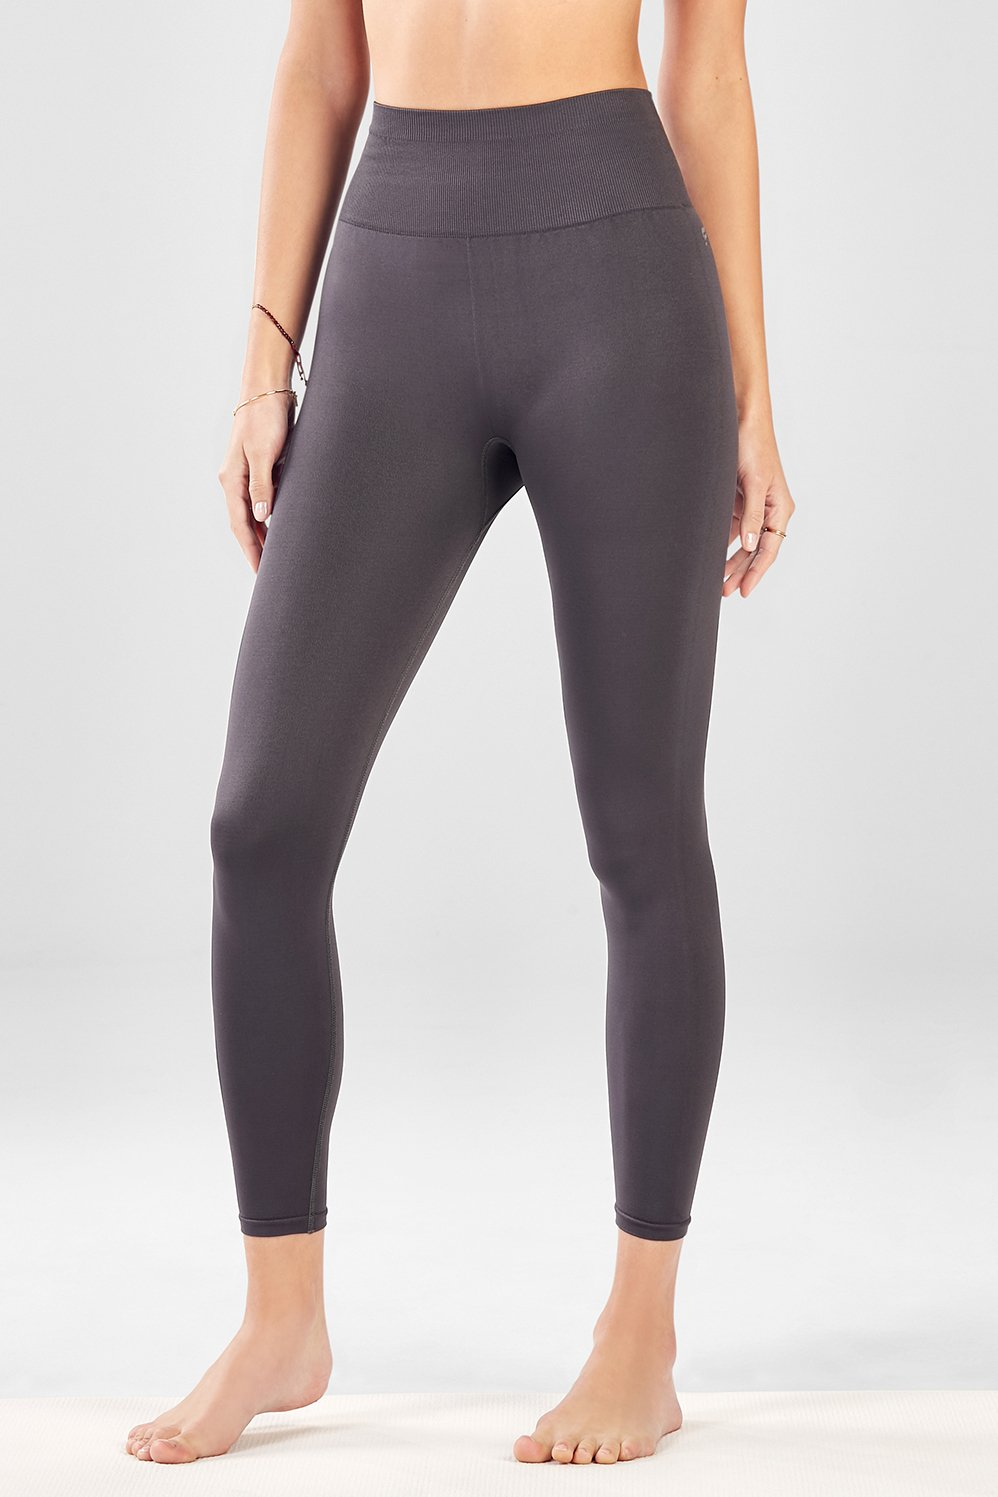 fde23e737c4980 Seamless High-Waisted Solid 7/8 - Fabletics